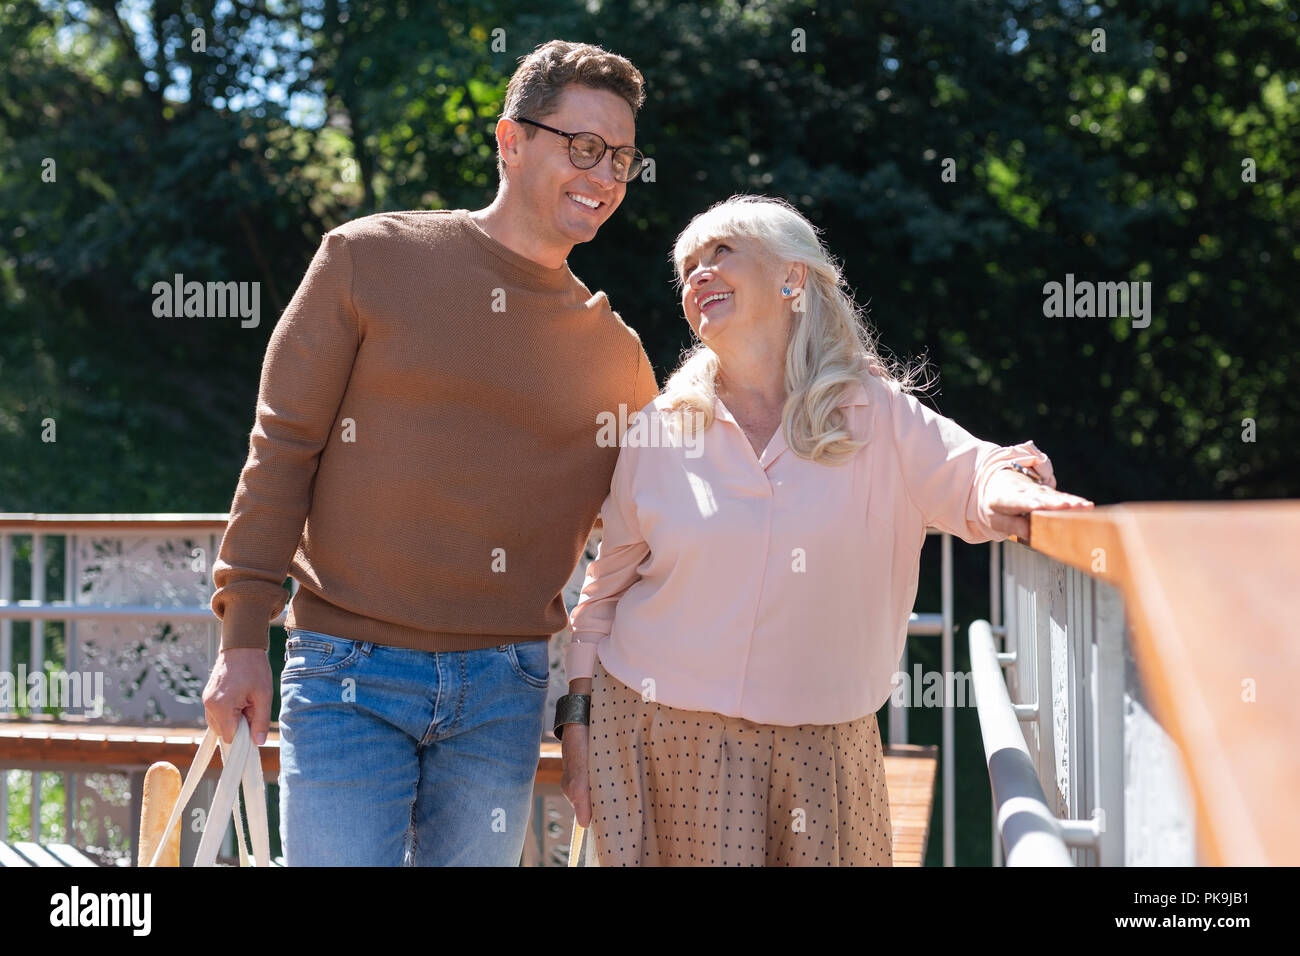 Handsome young male person supporting elderly woman - Stock Image